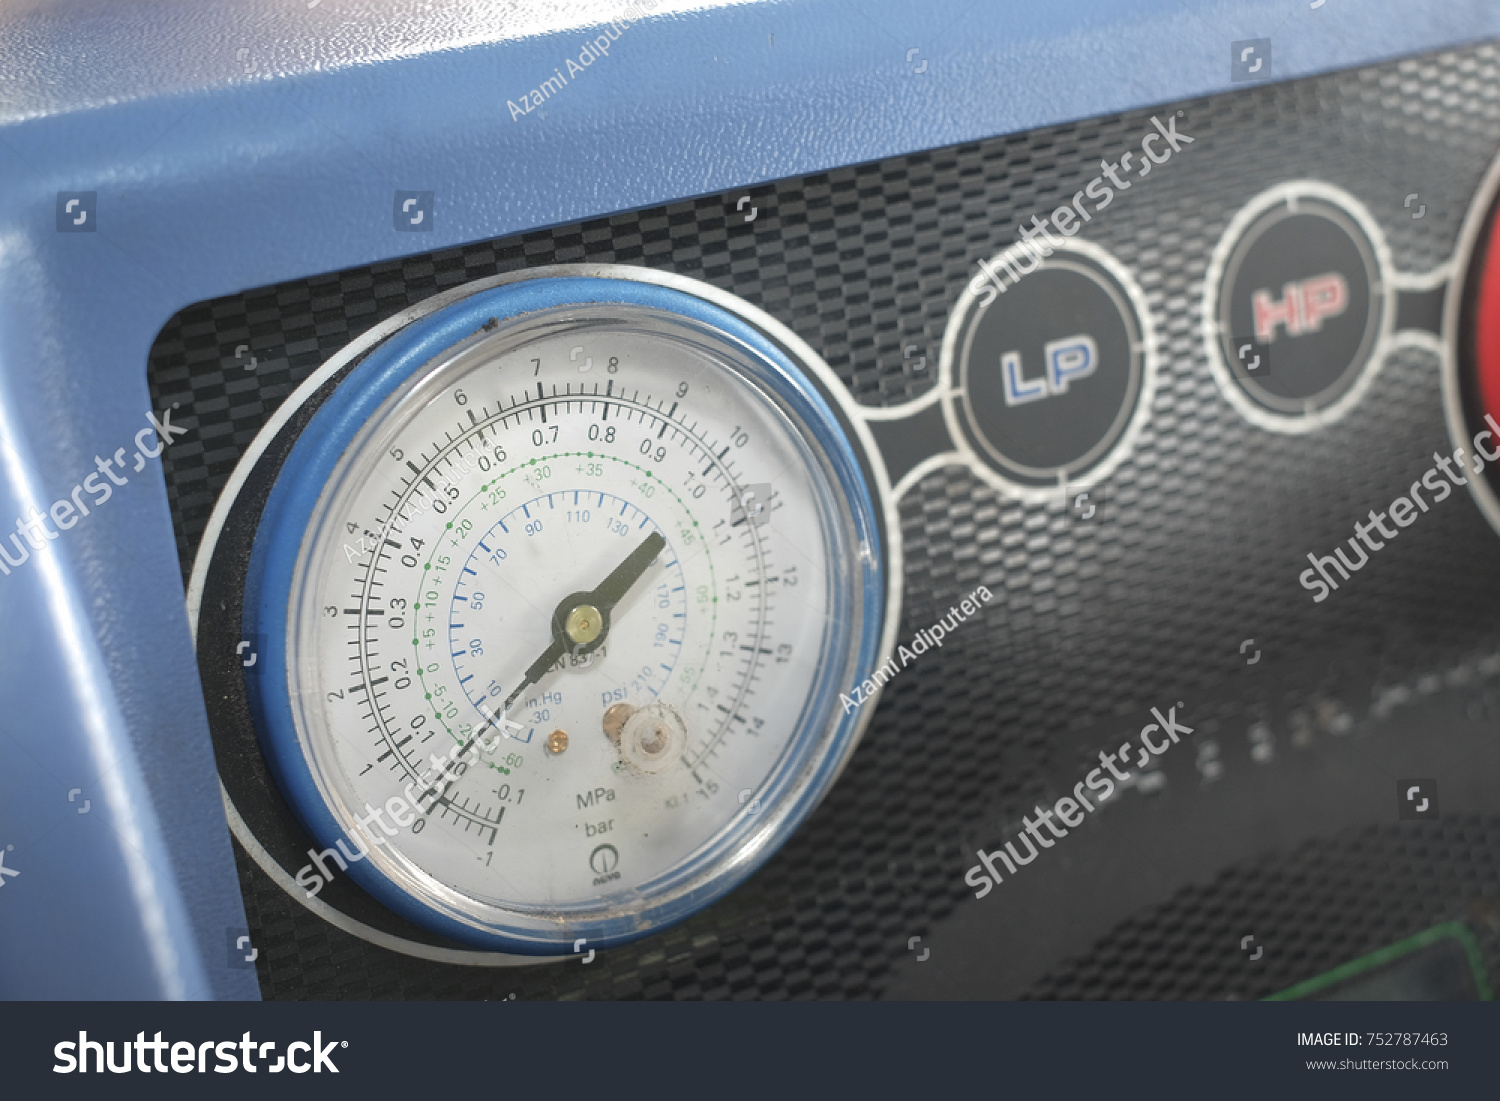 Manometer Gages On Equipment Filling Automotive Stock Photo ...